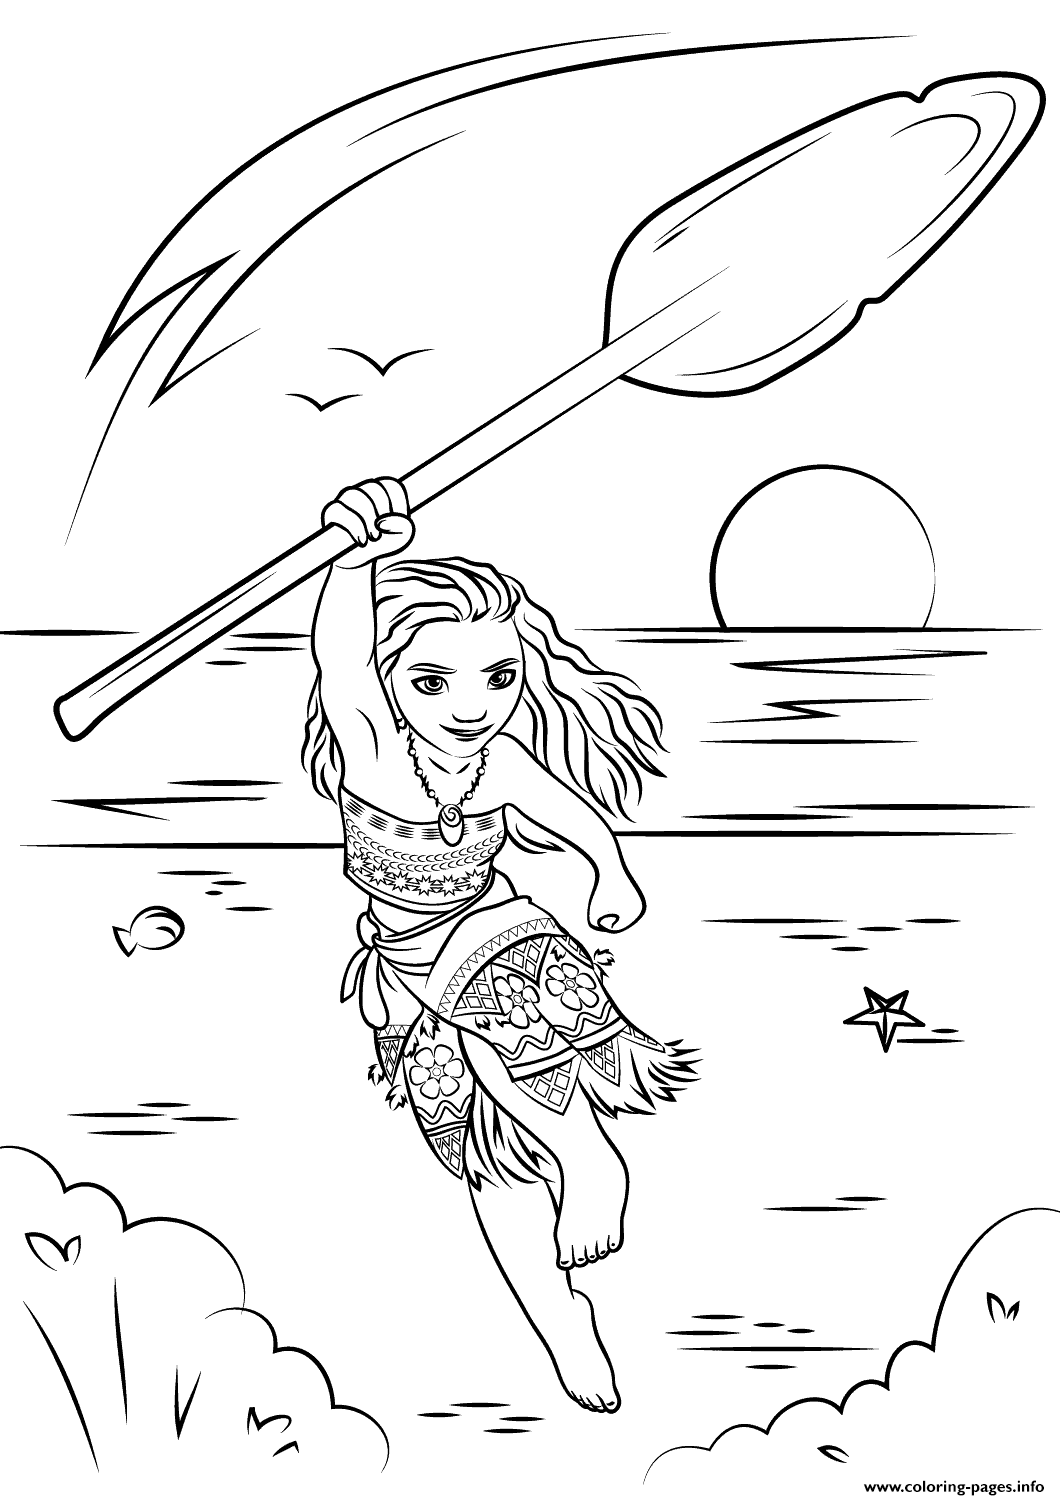 Moana Disney Coloring Pages Print Download 389 Prints